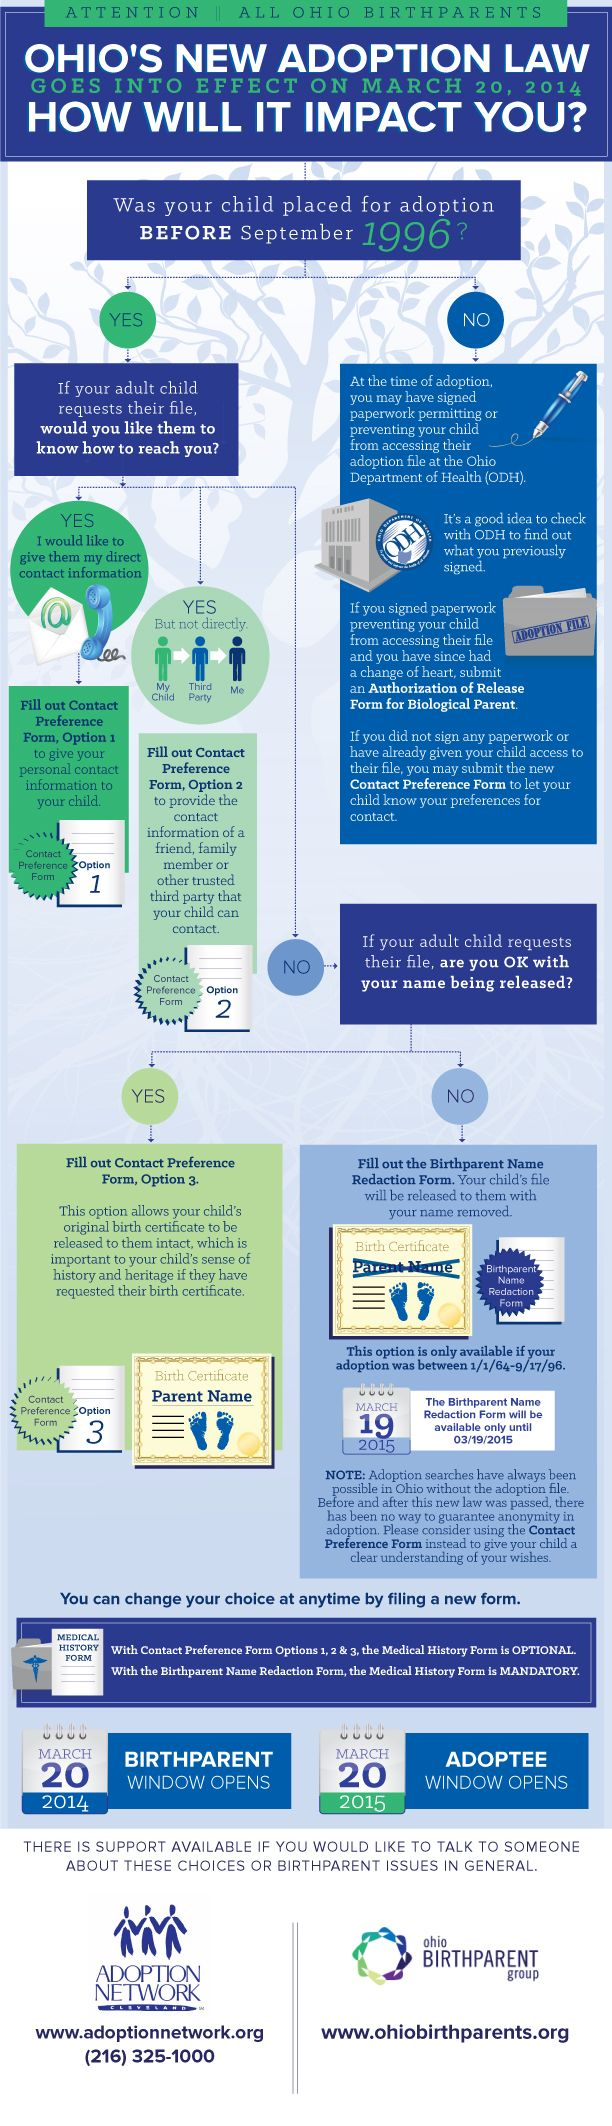 A decision tree for birthparent in Ohio about the new adoption records law